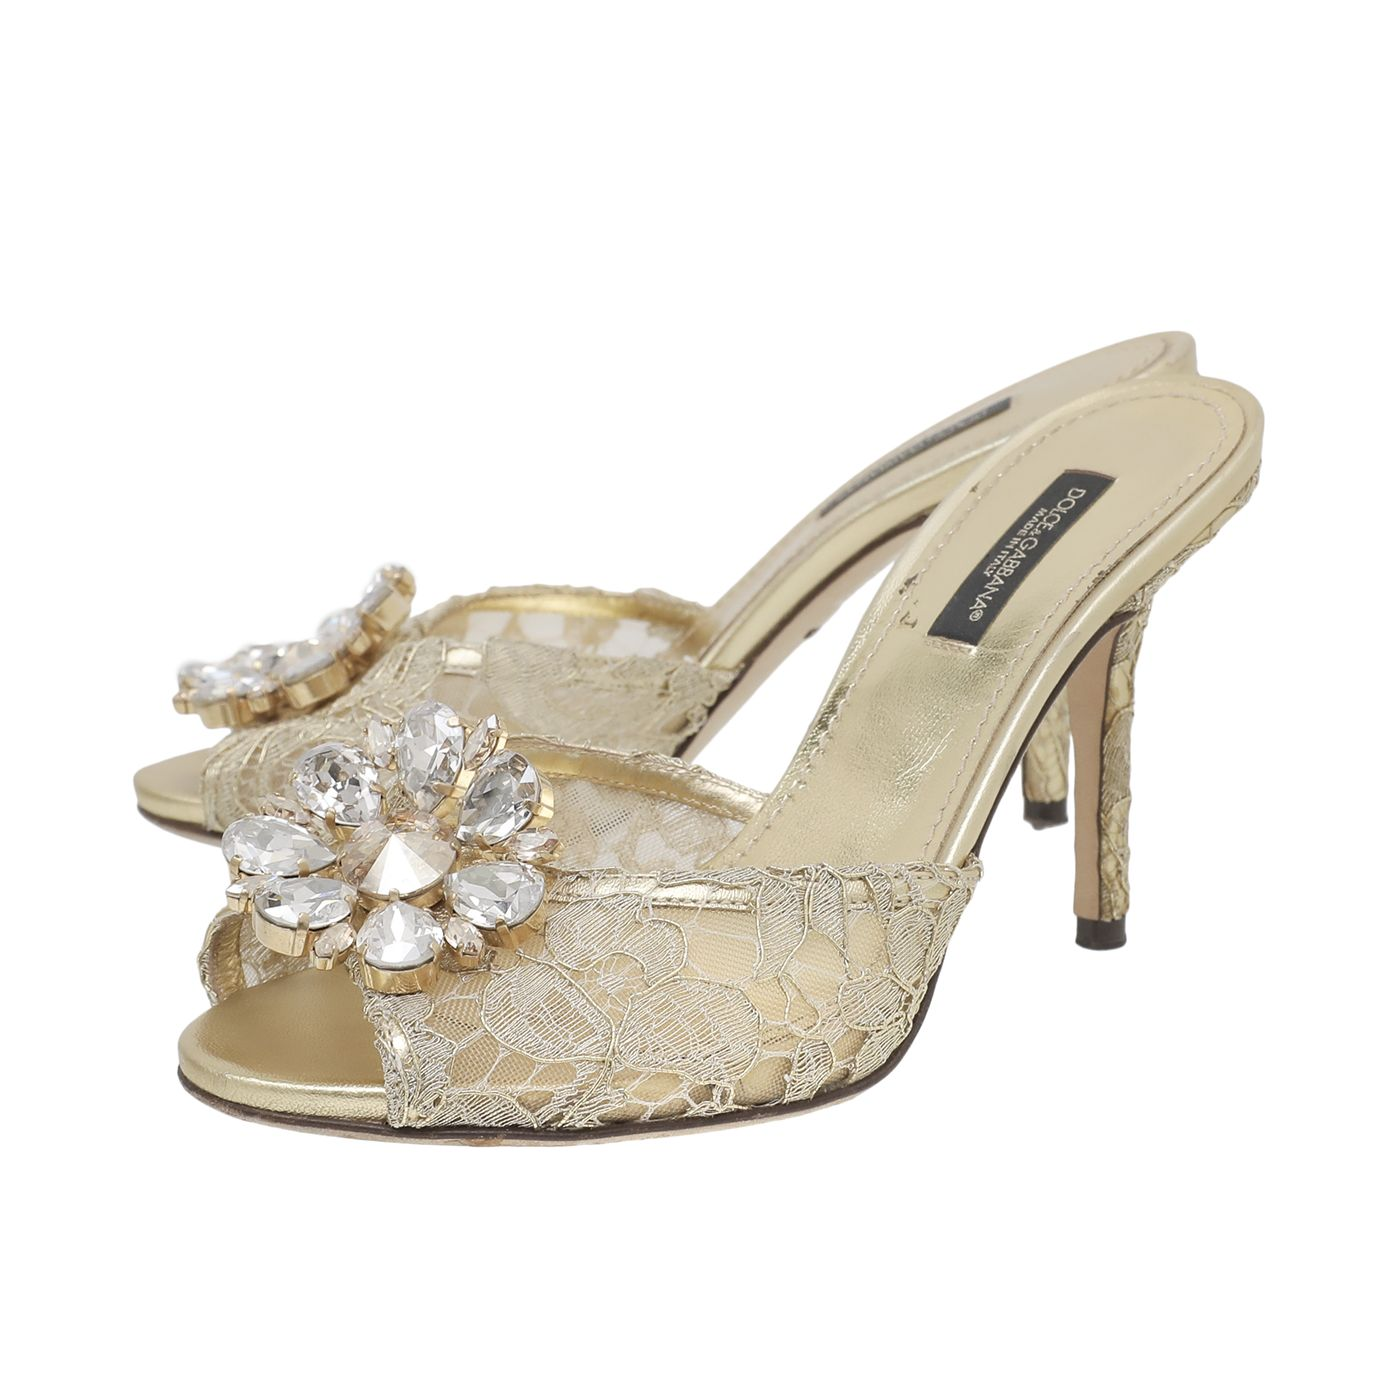 Dolce & Gabbana Gold Keira Crystal Embellished Lace Mid Heels Mules 36